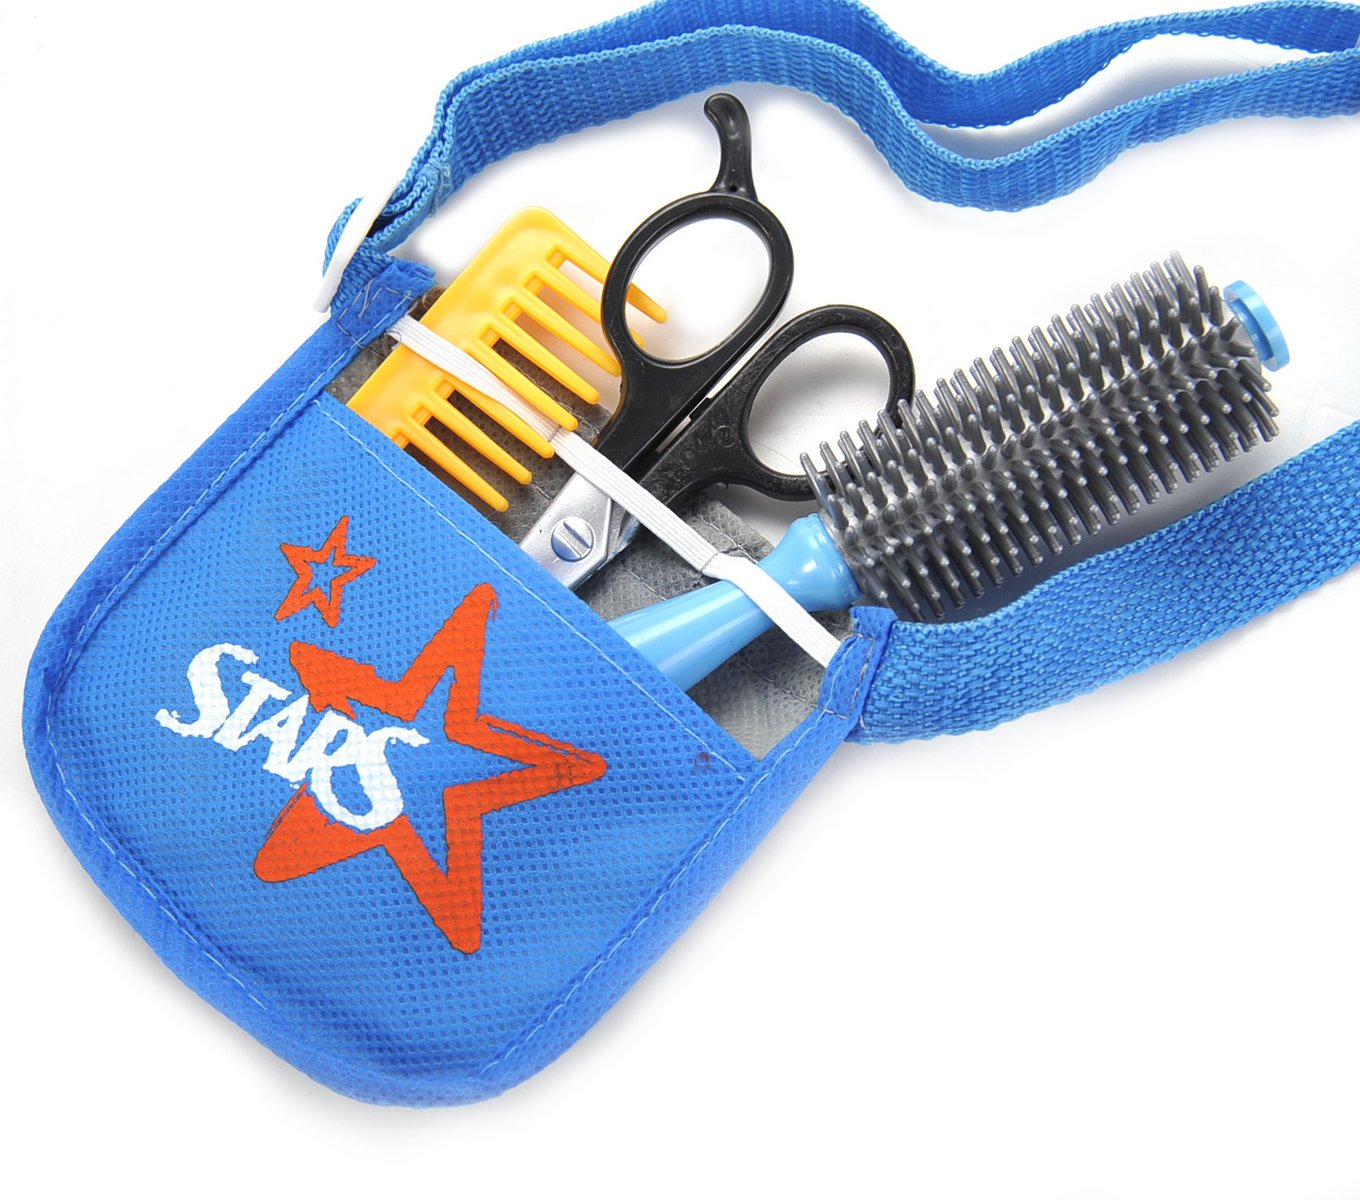 AMPERSAND SHOPS Professional Hair Stylist Barber Shop Salon Toy Set with Hair Dryer Brush Comb Curling Iron Shaver Scissors and Tool Belt Blue by AMPERSAND SHOPS (Image #2)